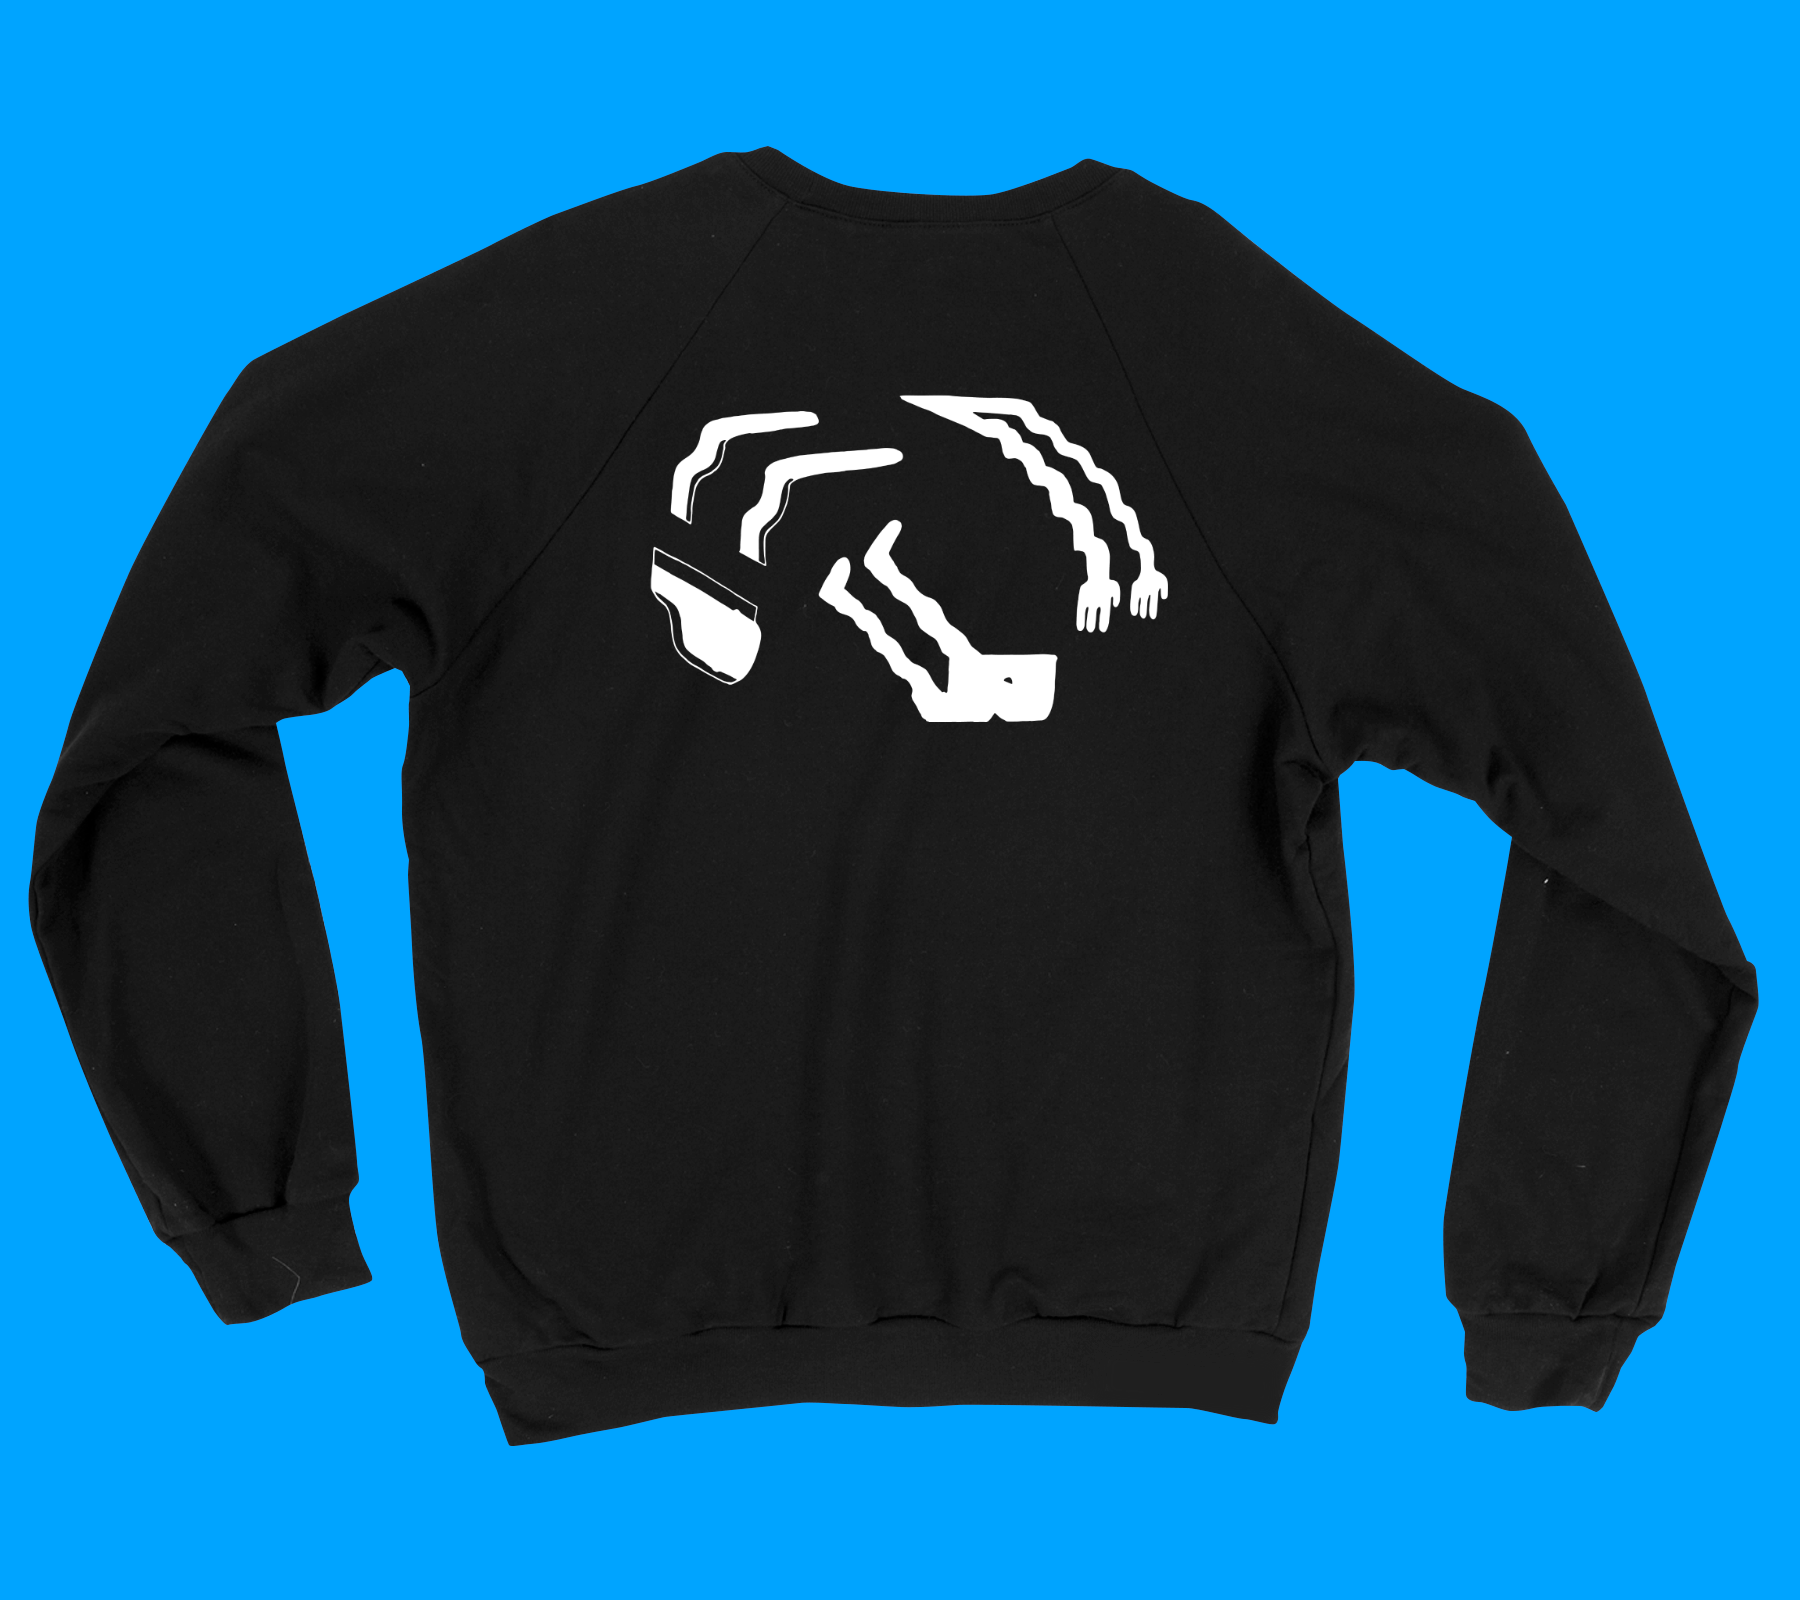 Twist - Back Print Crew Neck Sweatshirt - Black